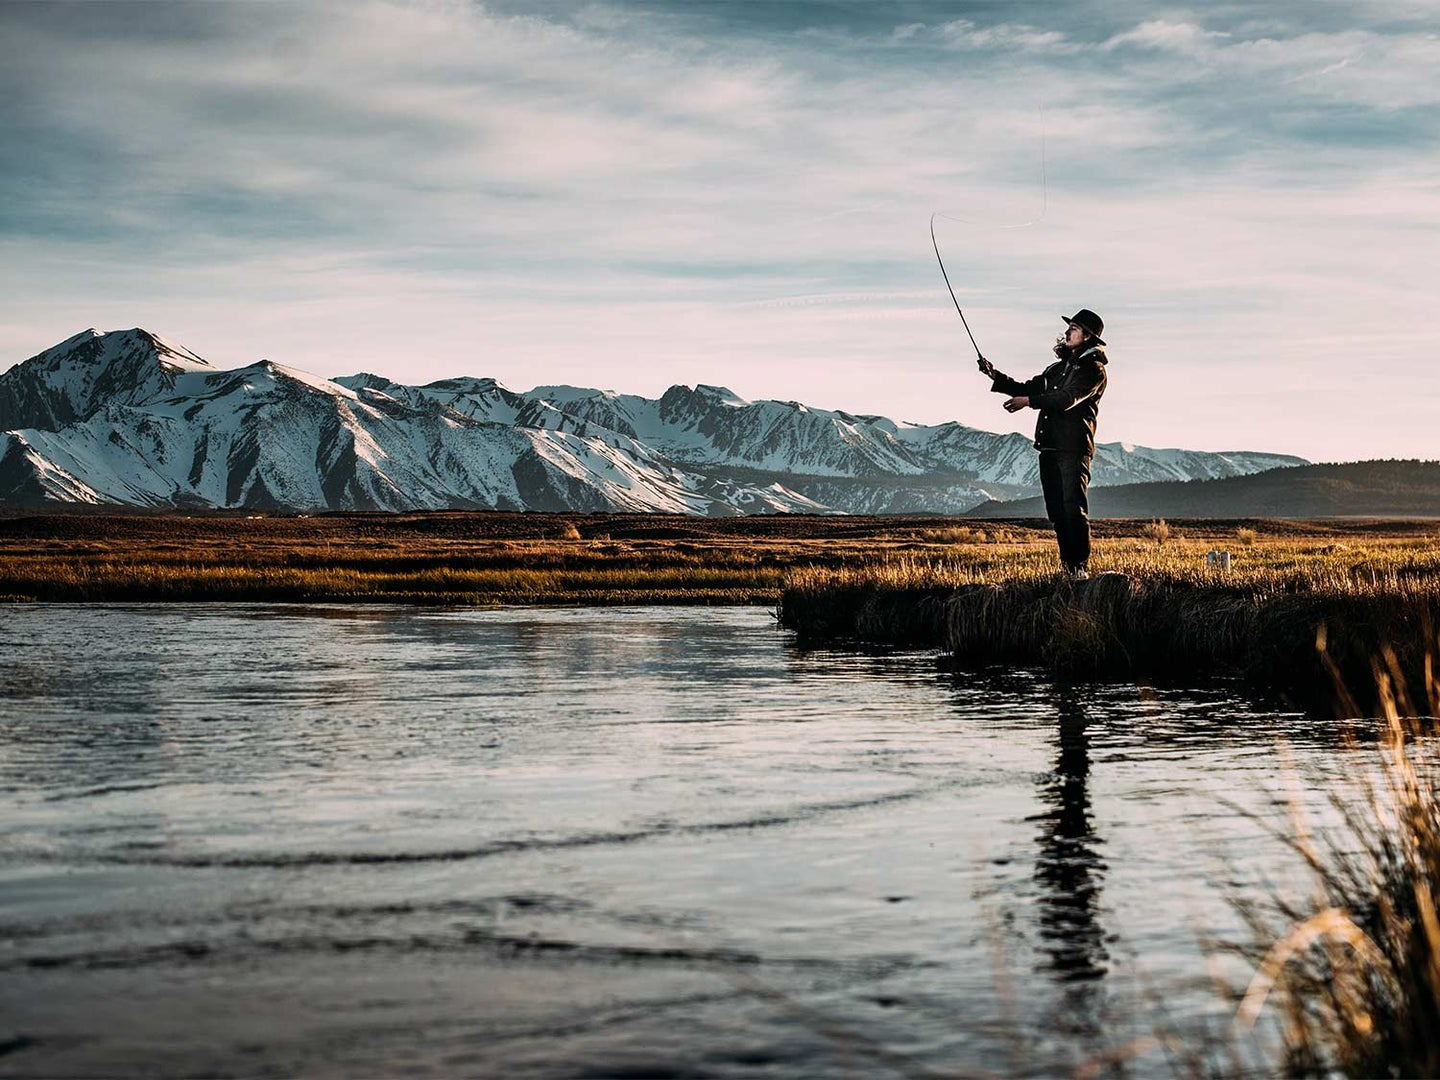 An angler fishing a river side with snowy mountains in the distance.